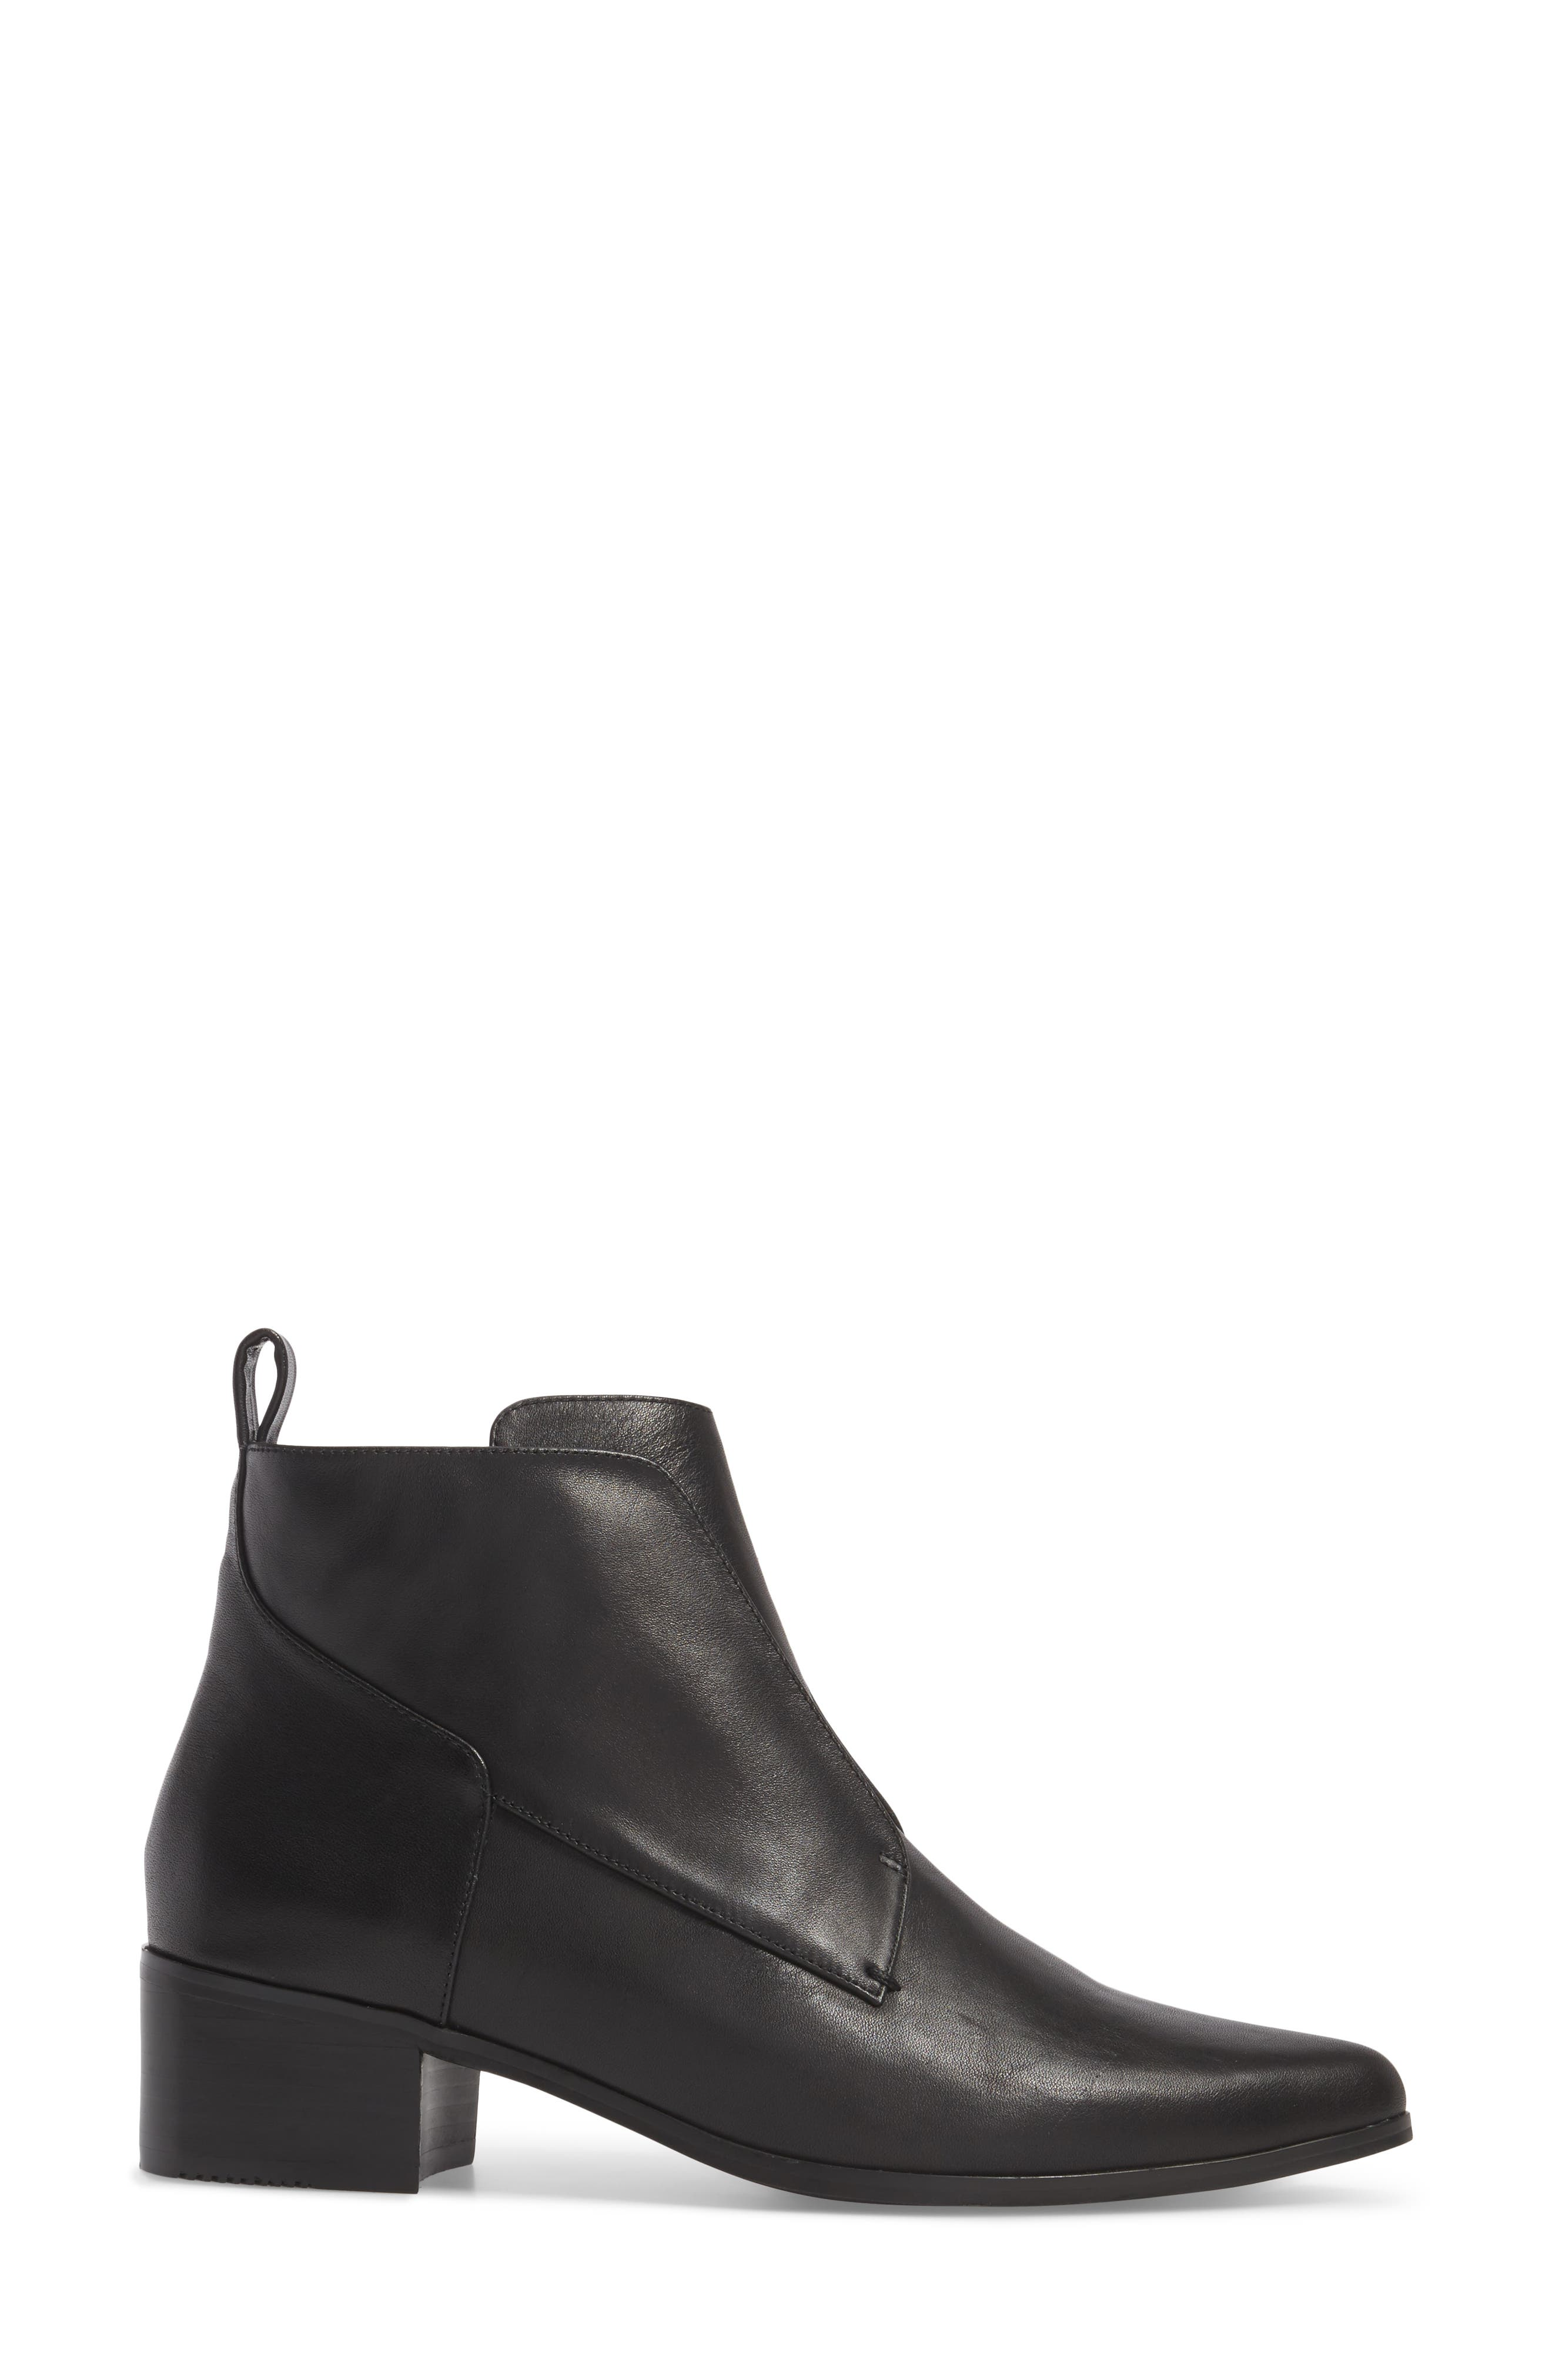 Walter Laceless Bootie,                             Alternate thumbnail 3, color,                             Black Leather